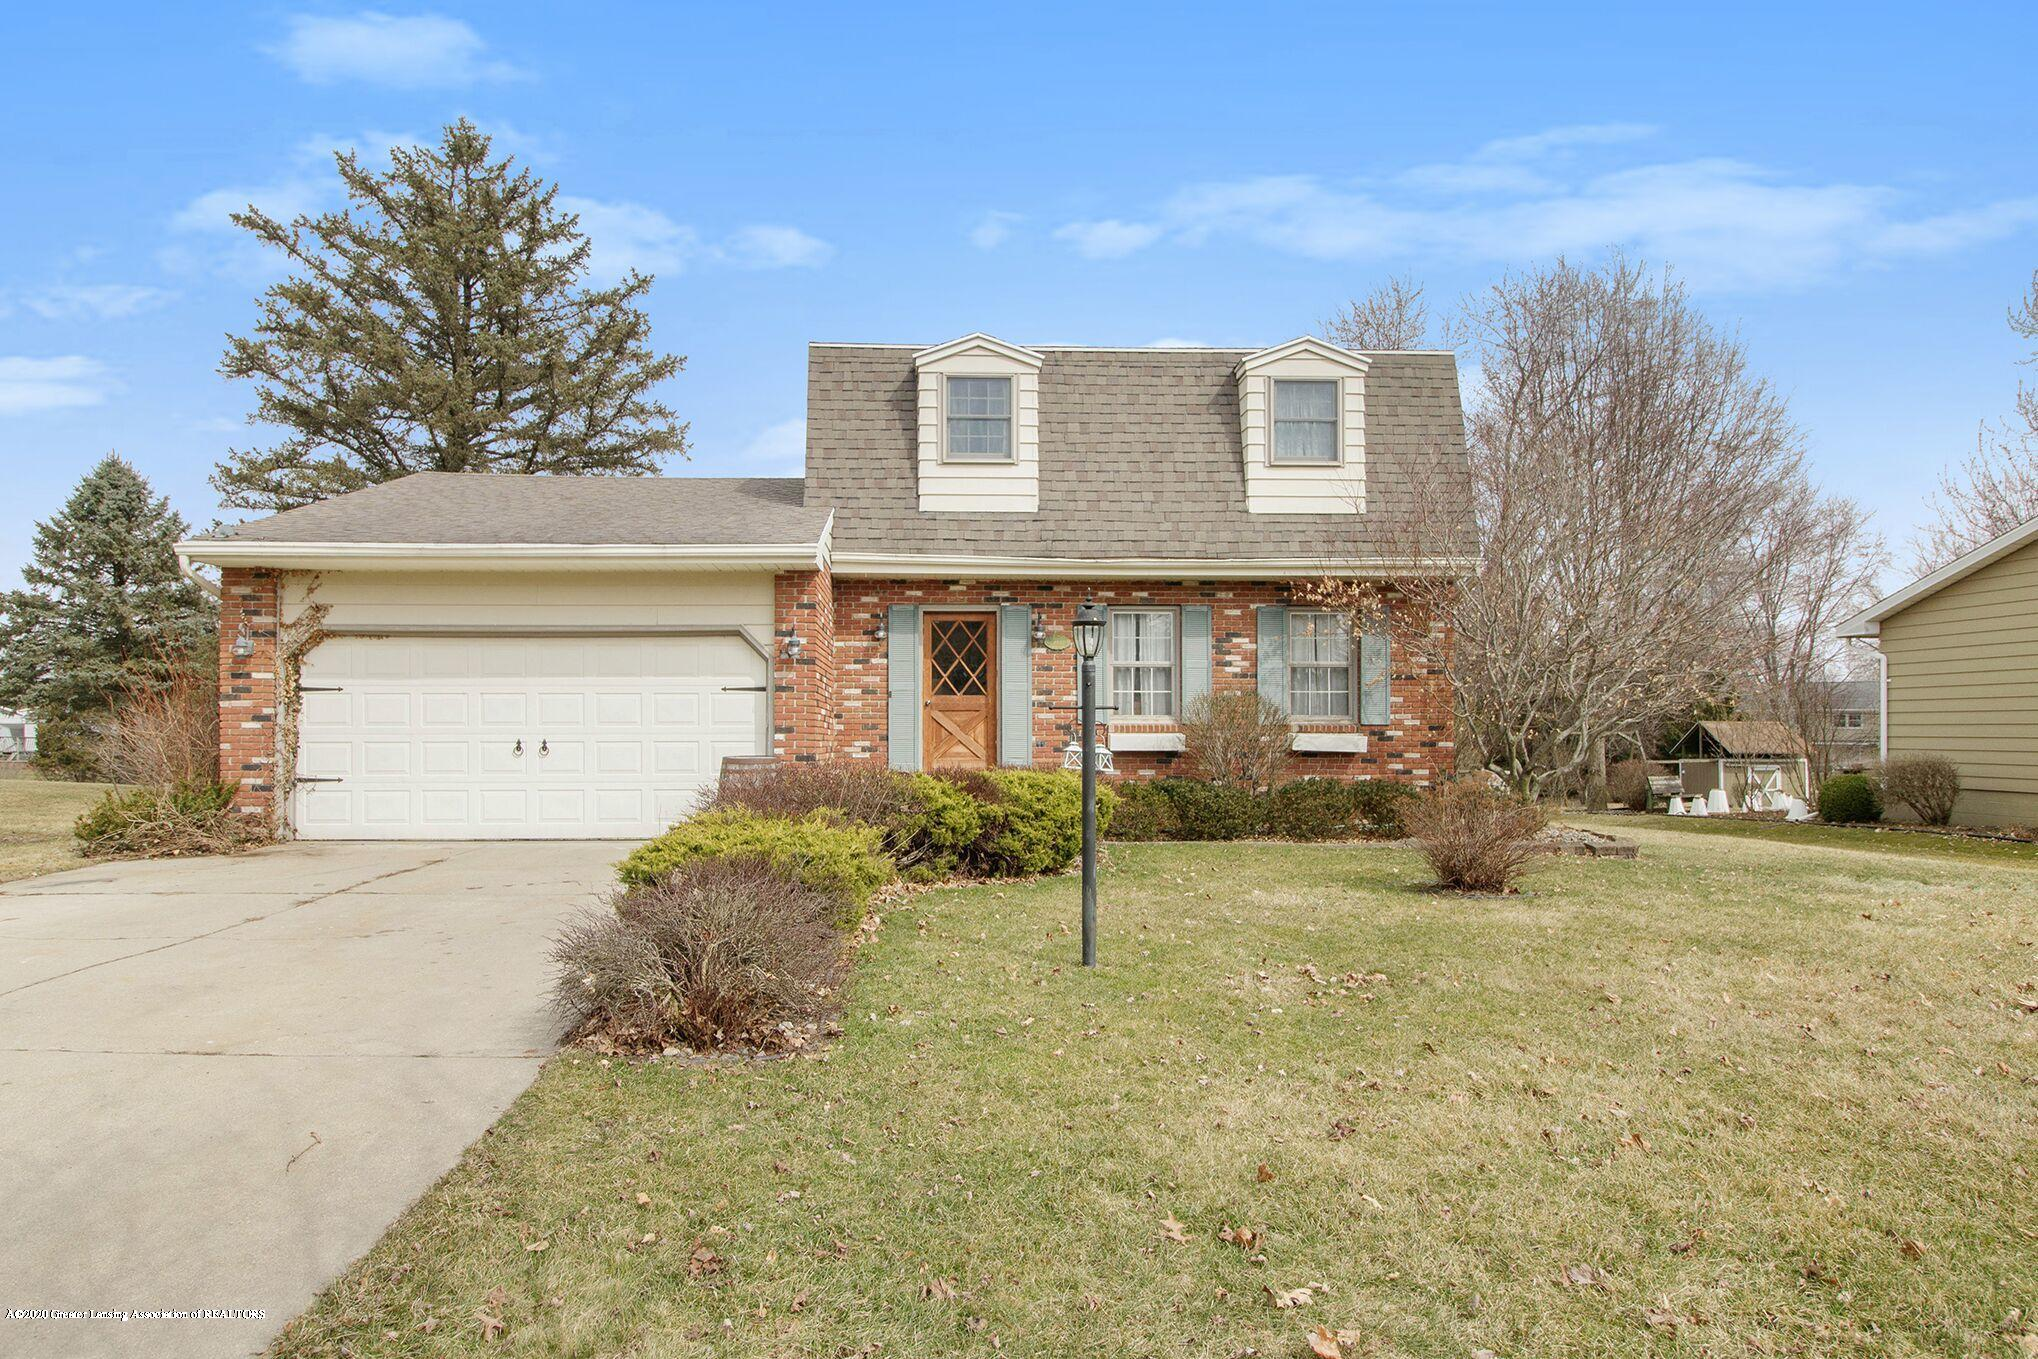 12816 E Greenfield Rd - Front Photo - 1